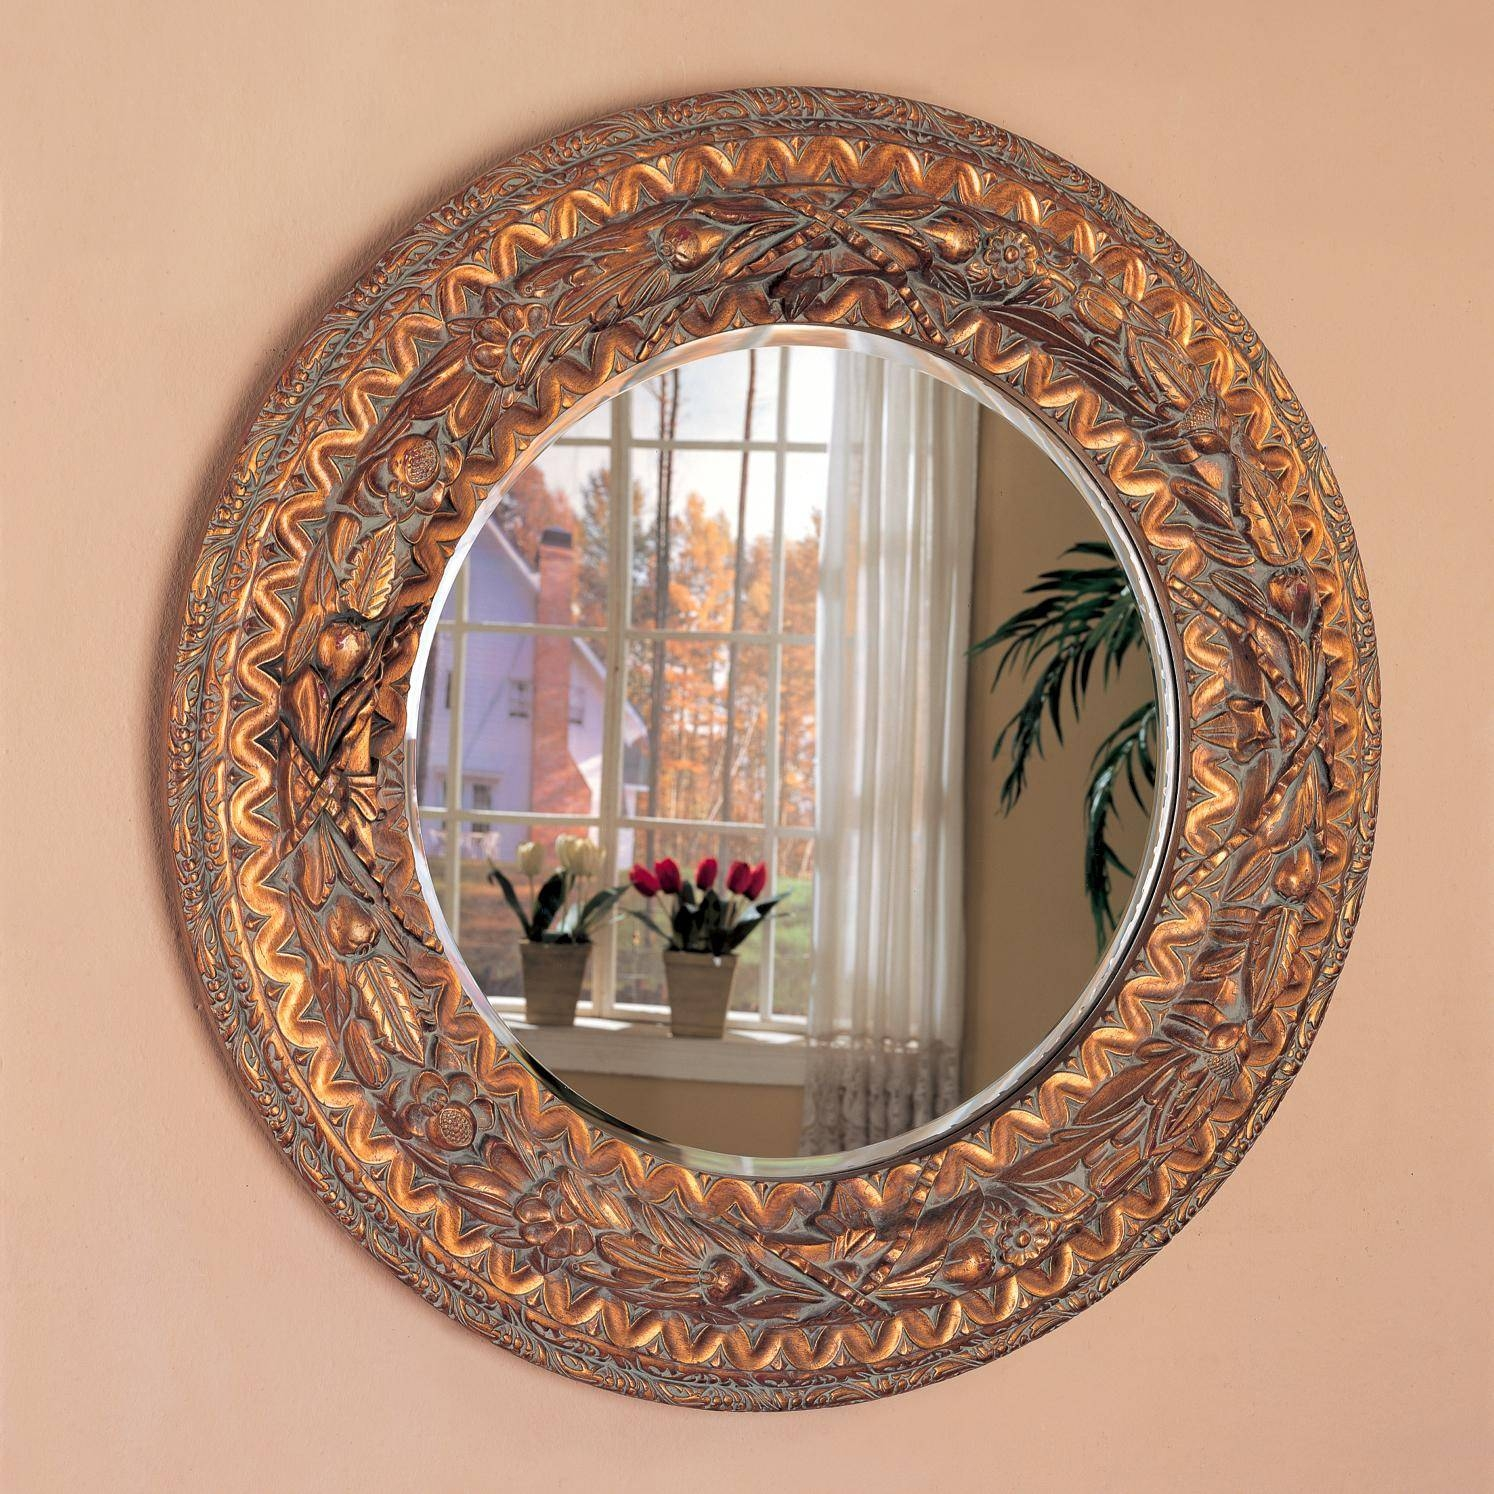 Accent Mirror for Ornate Round Mirrors (Image 5 of 25)